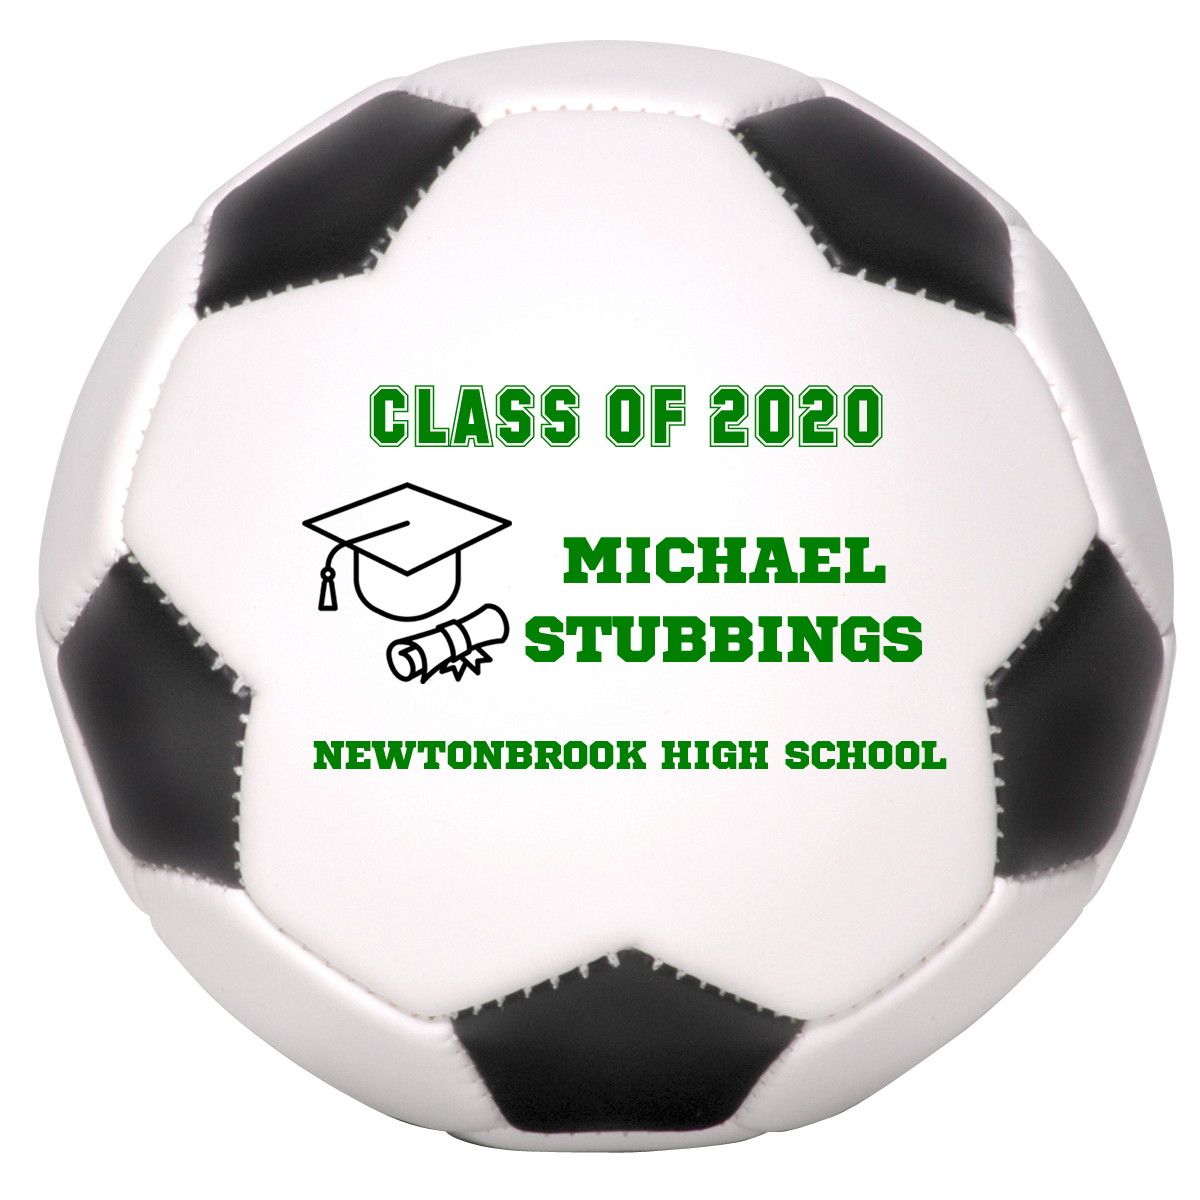 Primary image for Personalized Custom Class of 2020 Graduation Regulation Soccer Ball Green Text